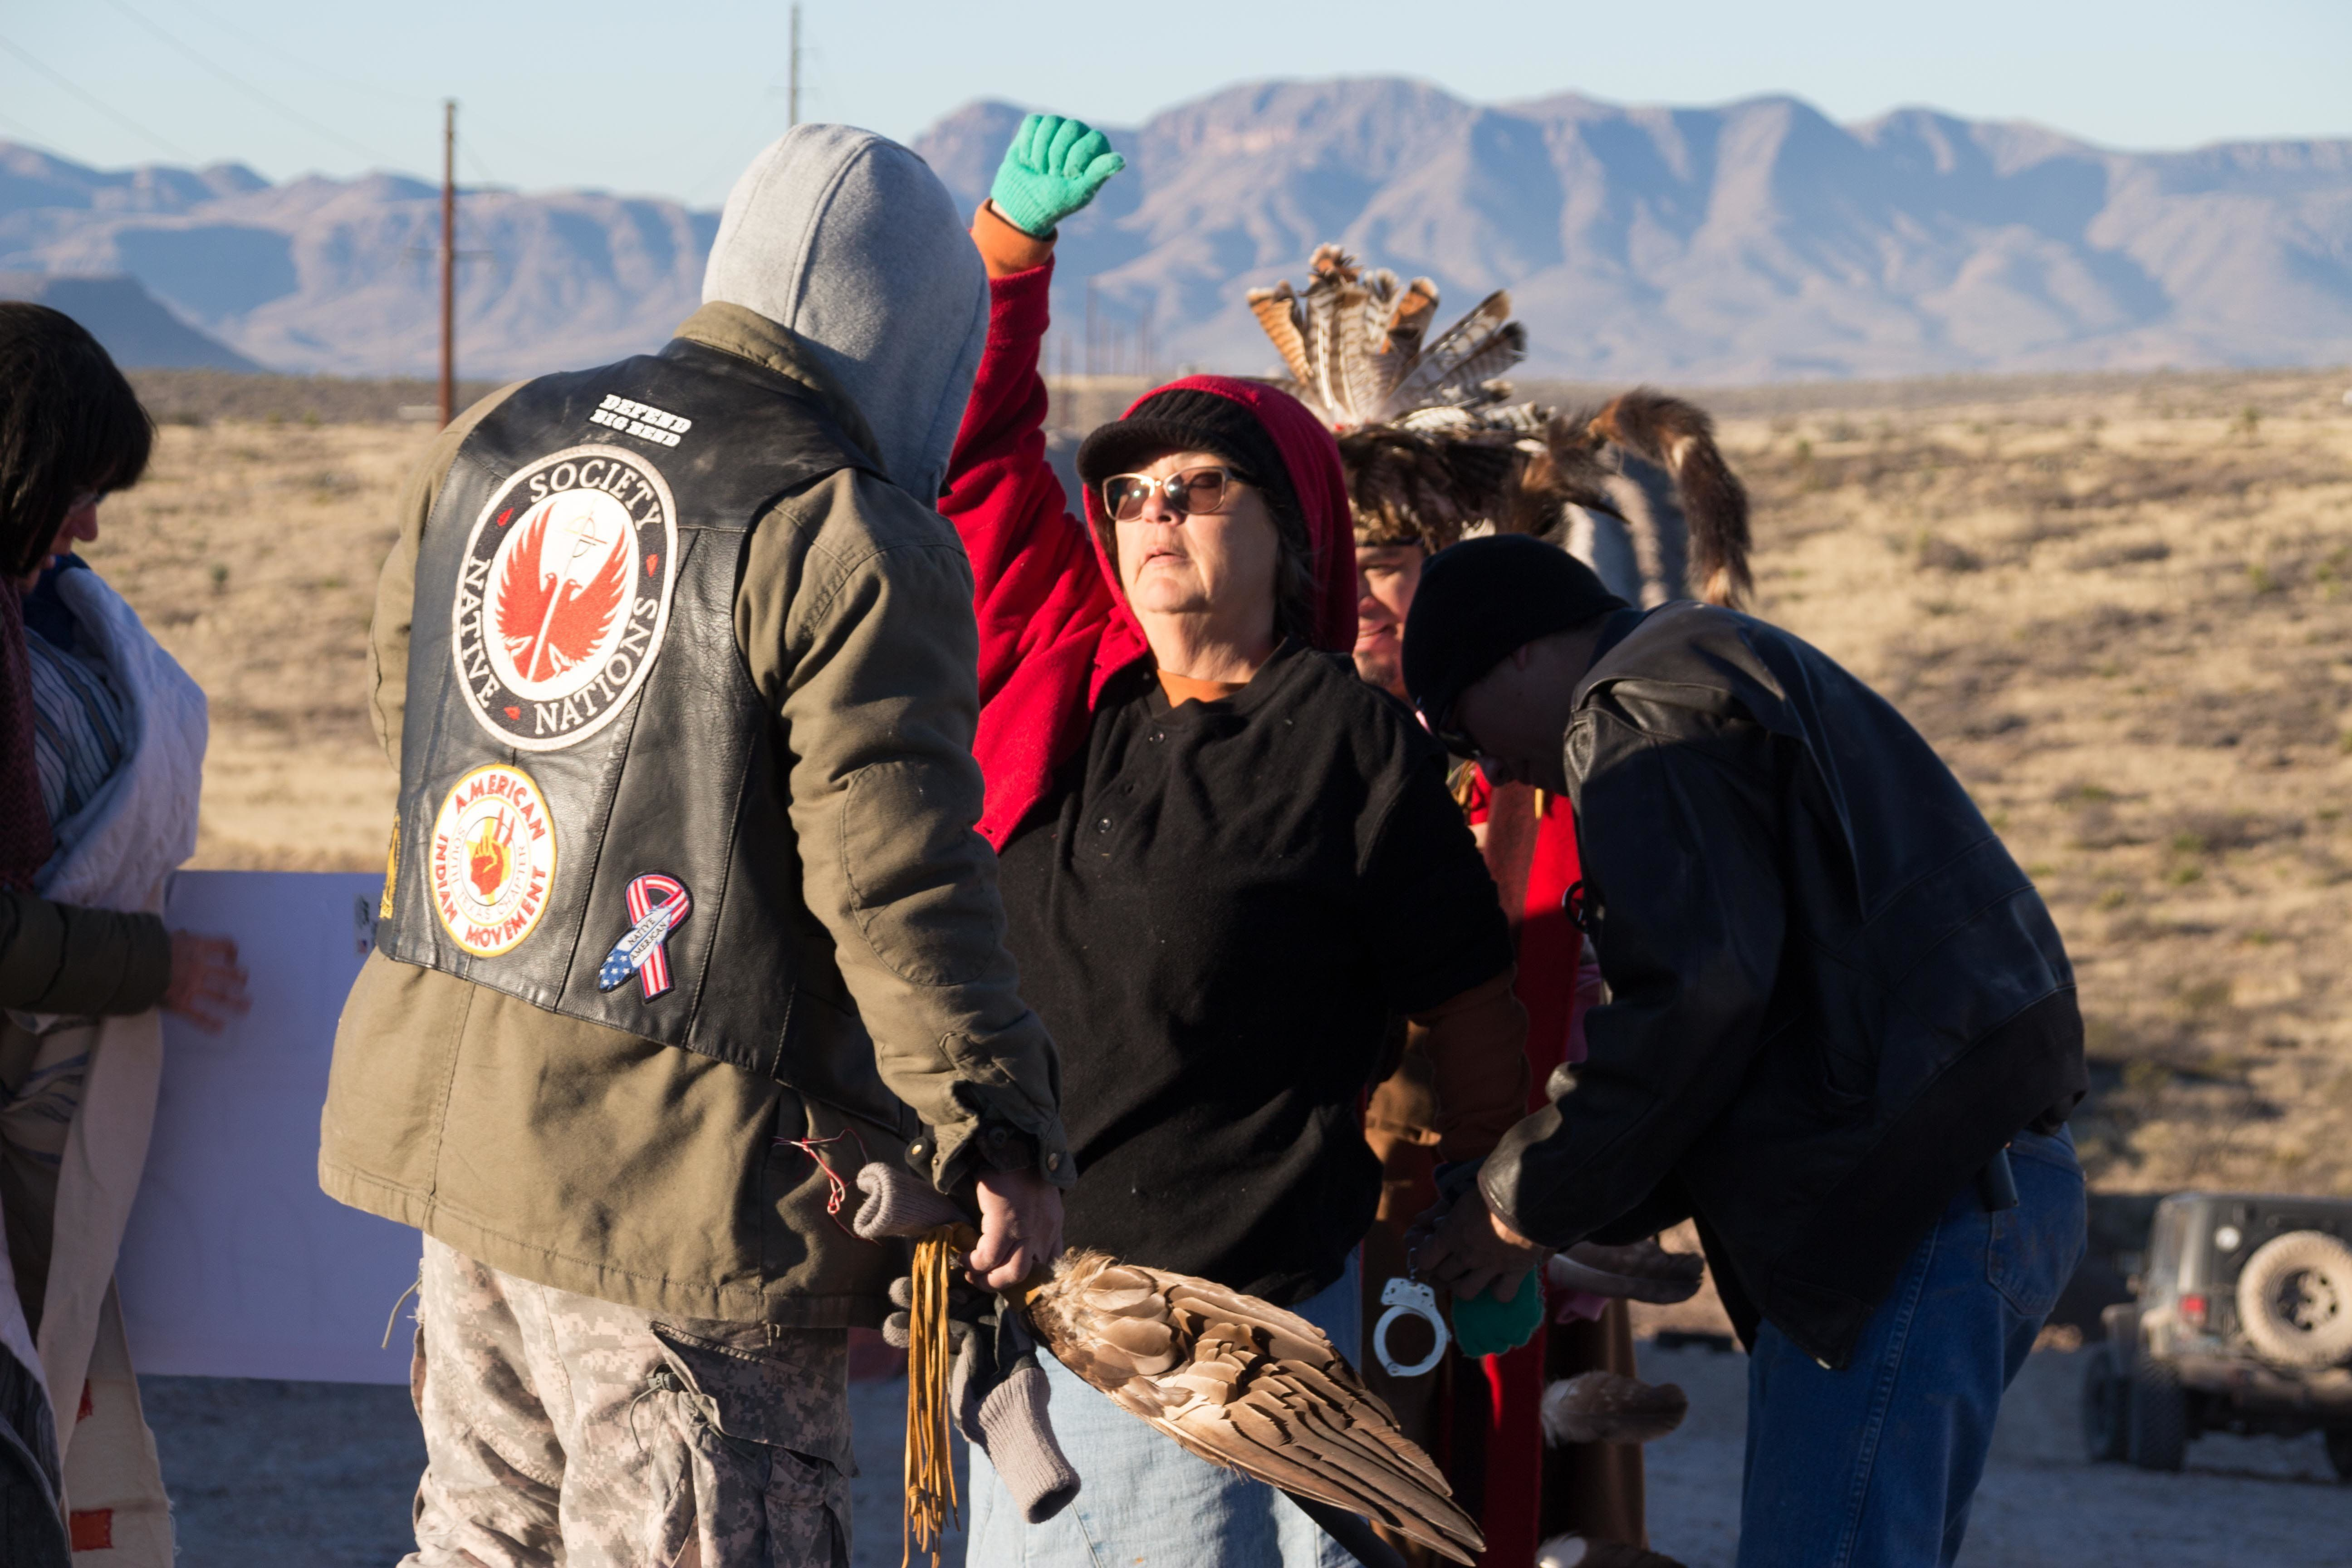 Protesters trying to stop a natural gas pipeline in west Texas were arrested on Jan 7 near Marfa.